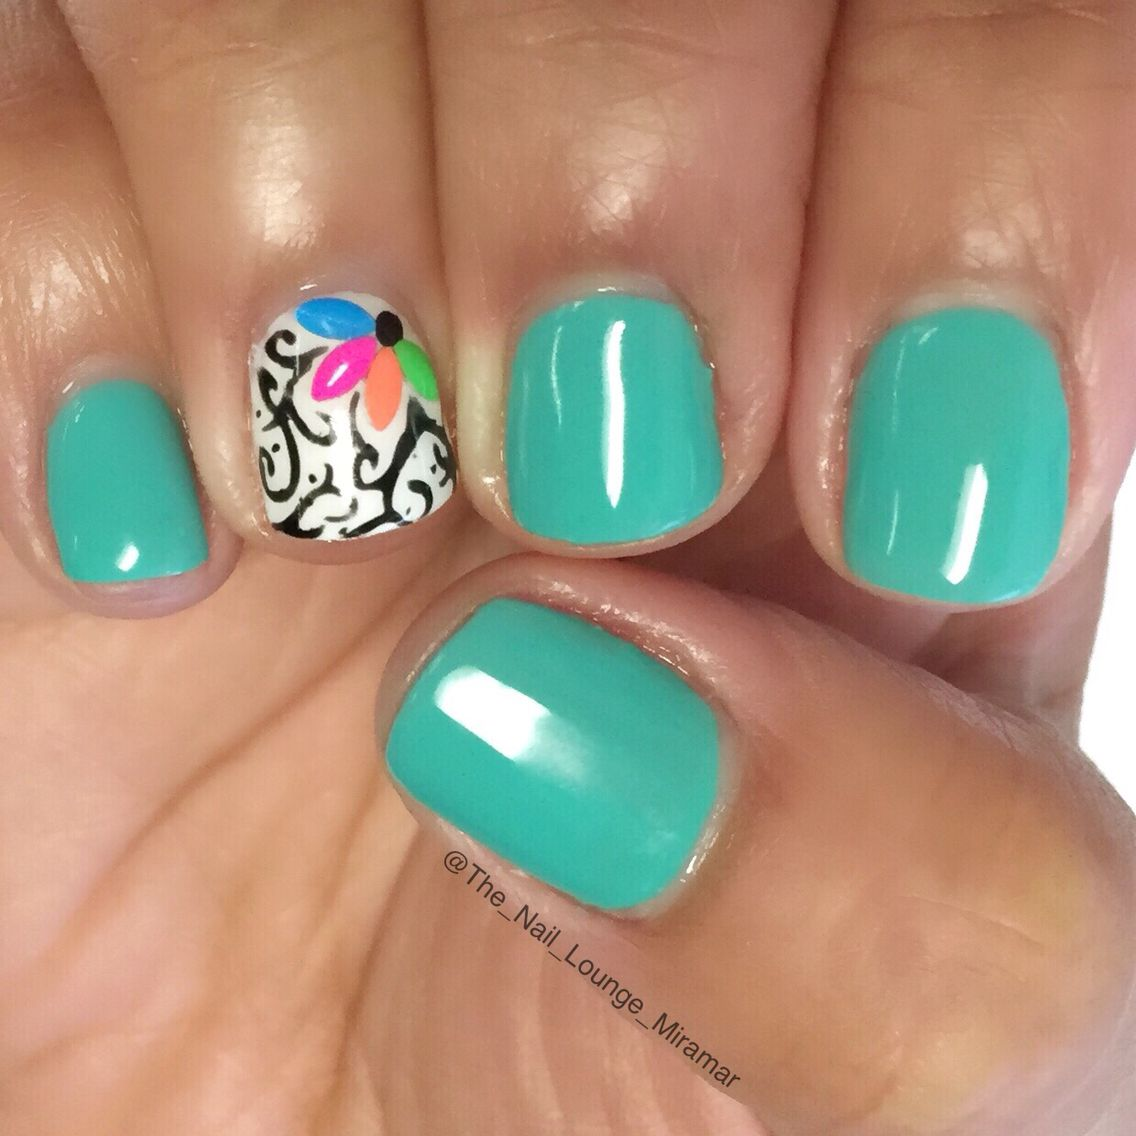 teal flower nail art design